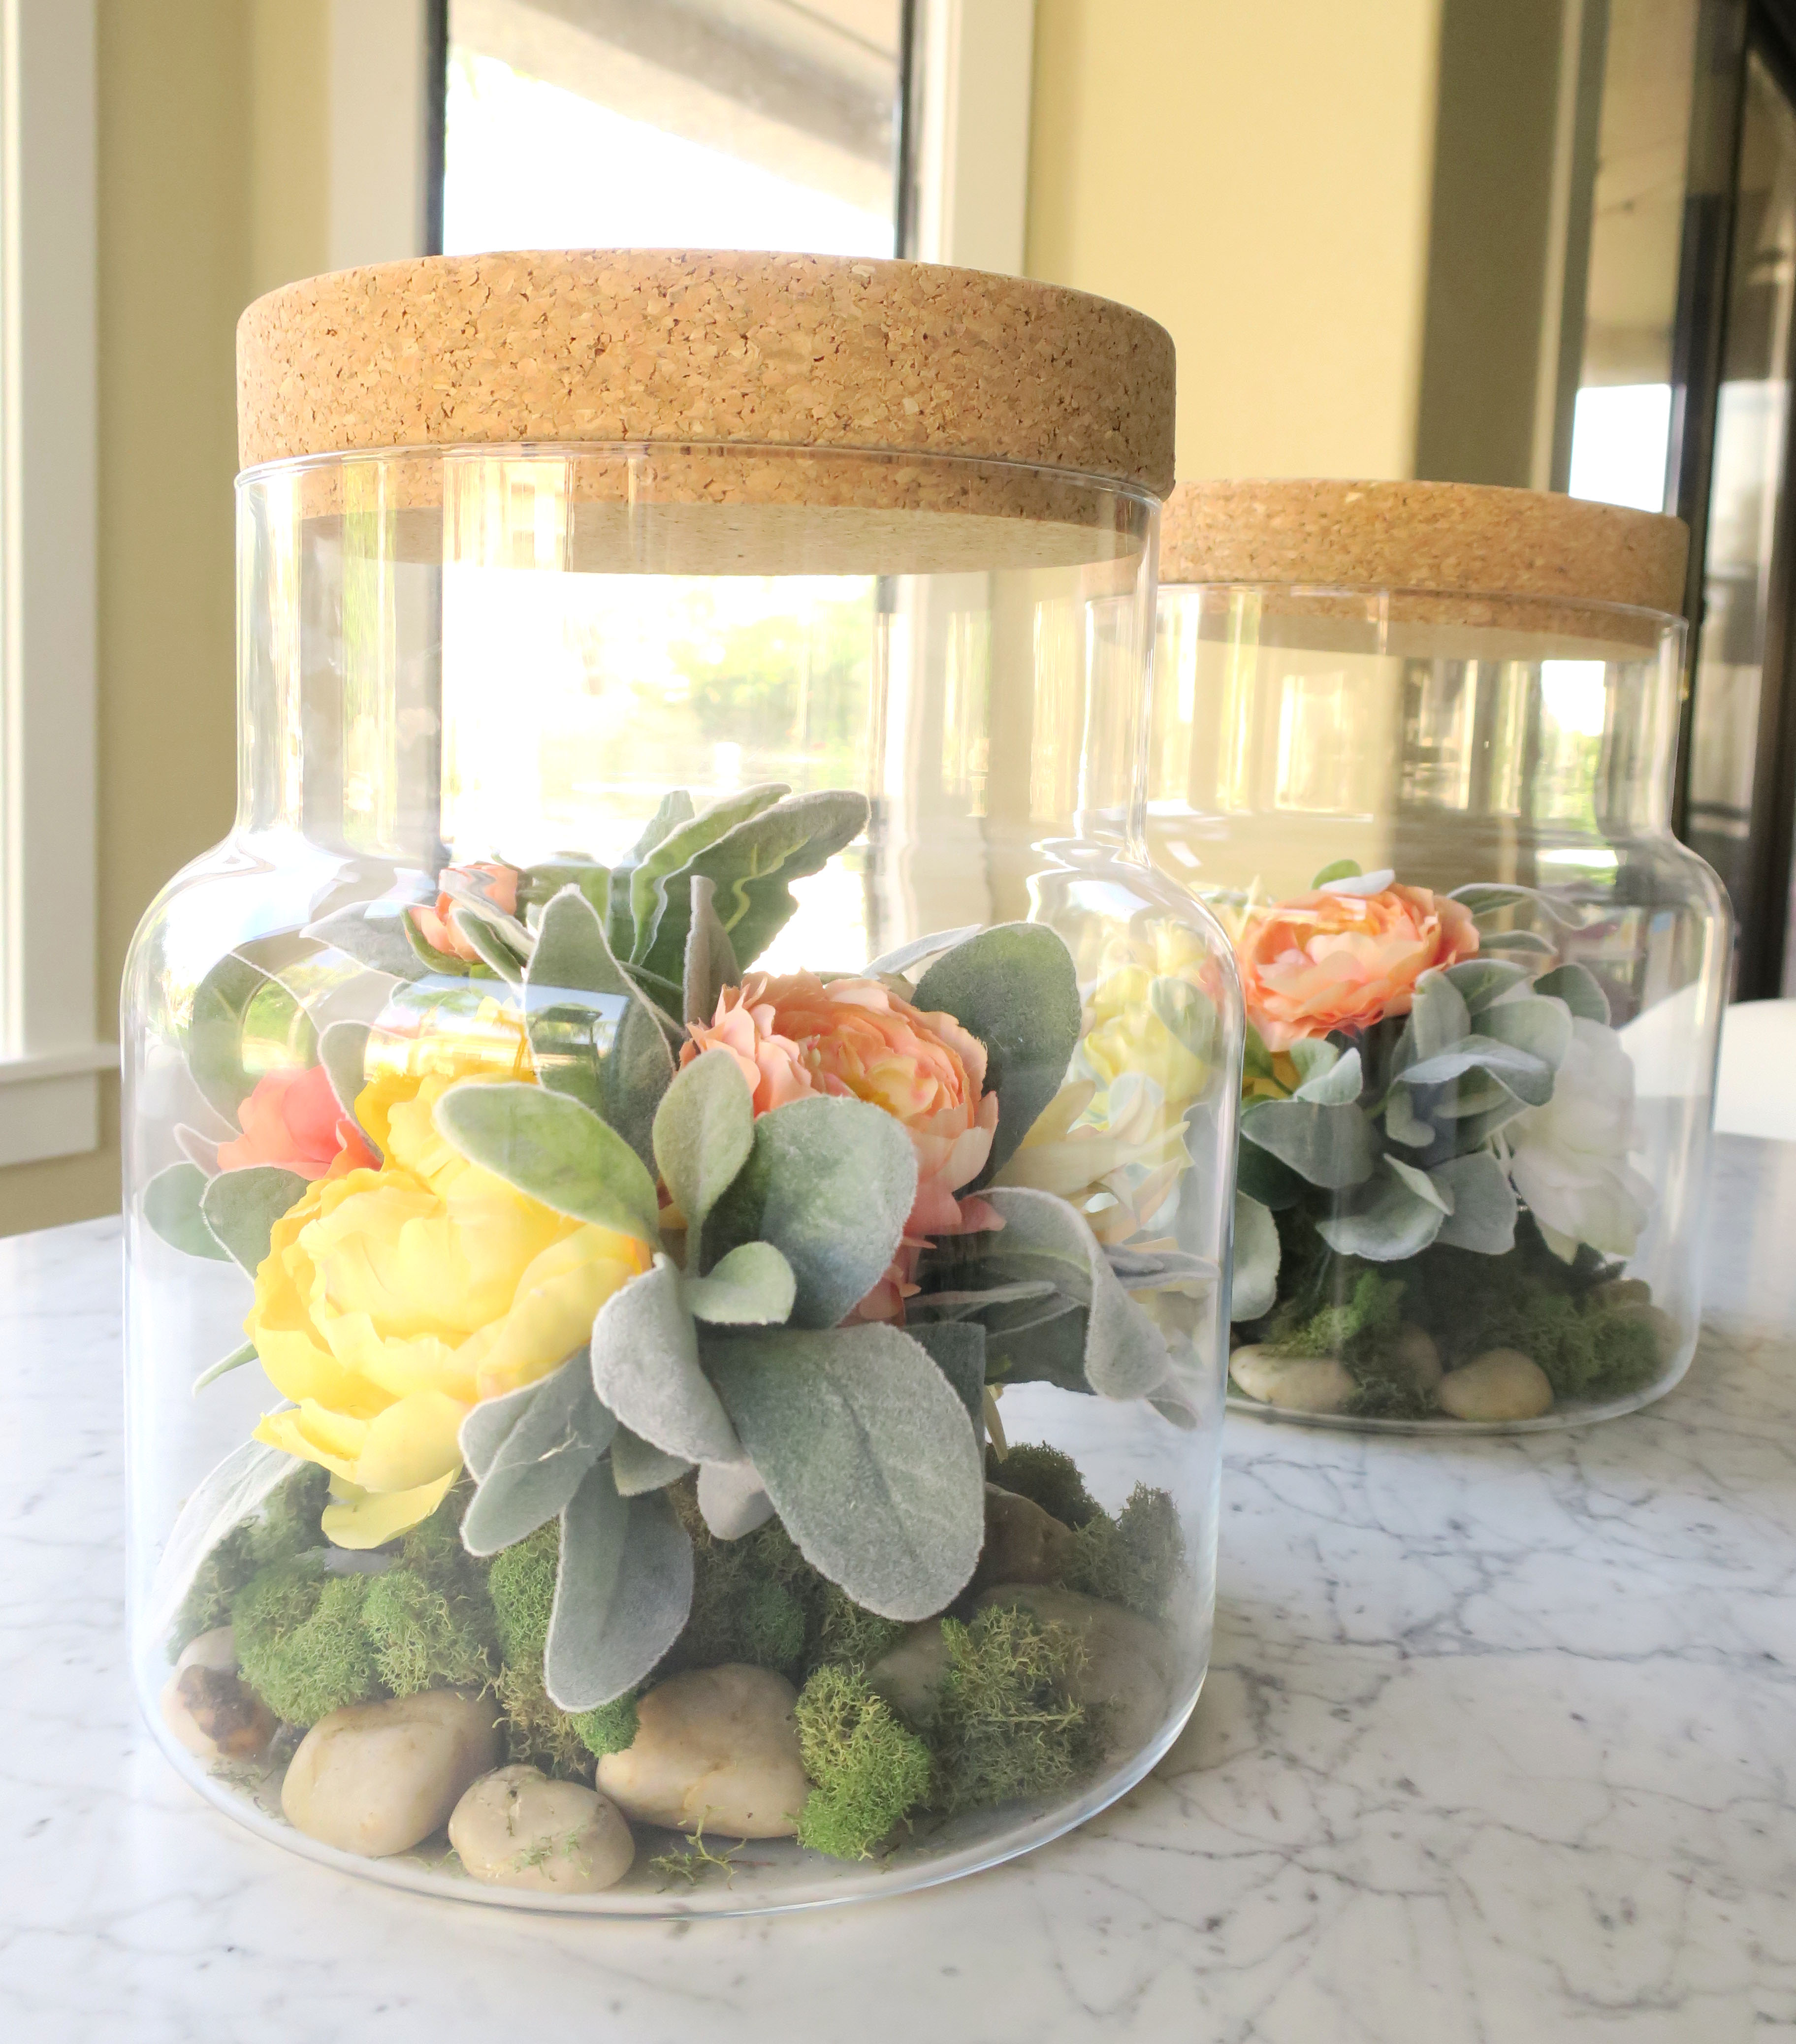 Diy Floral Terrarium J J Design Group